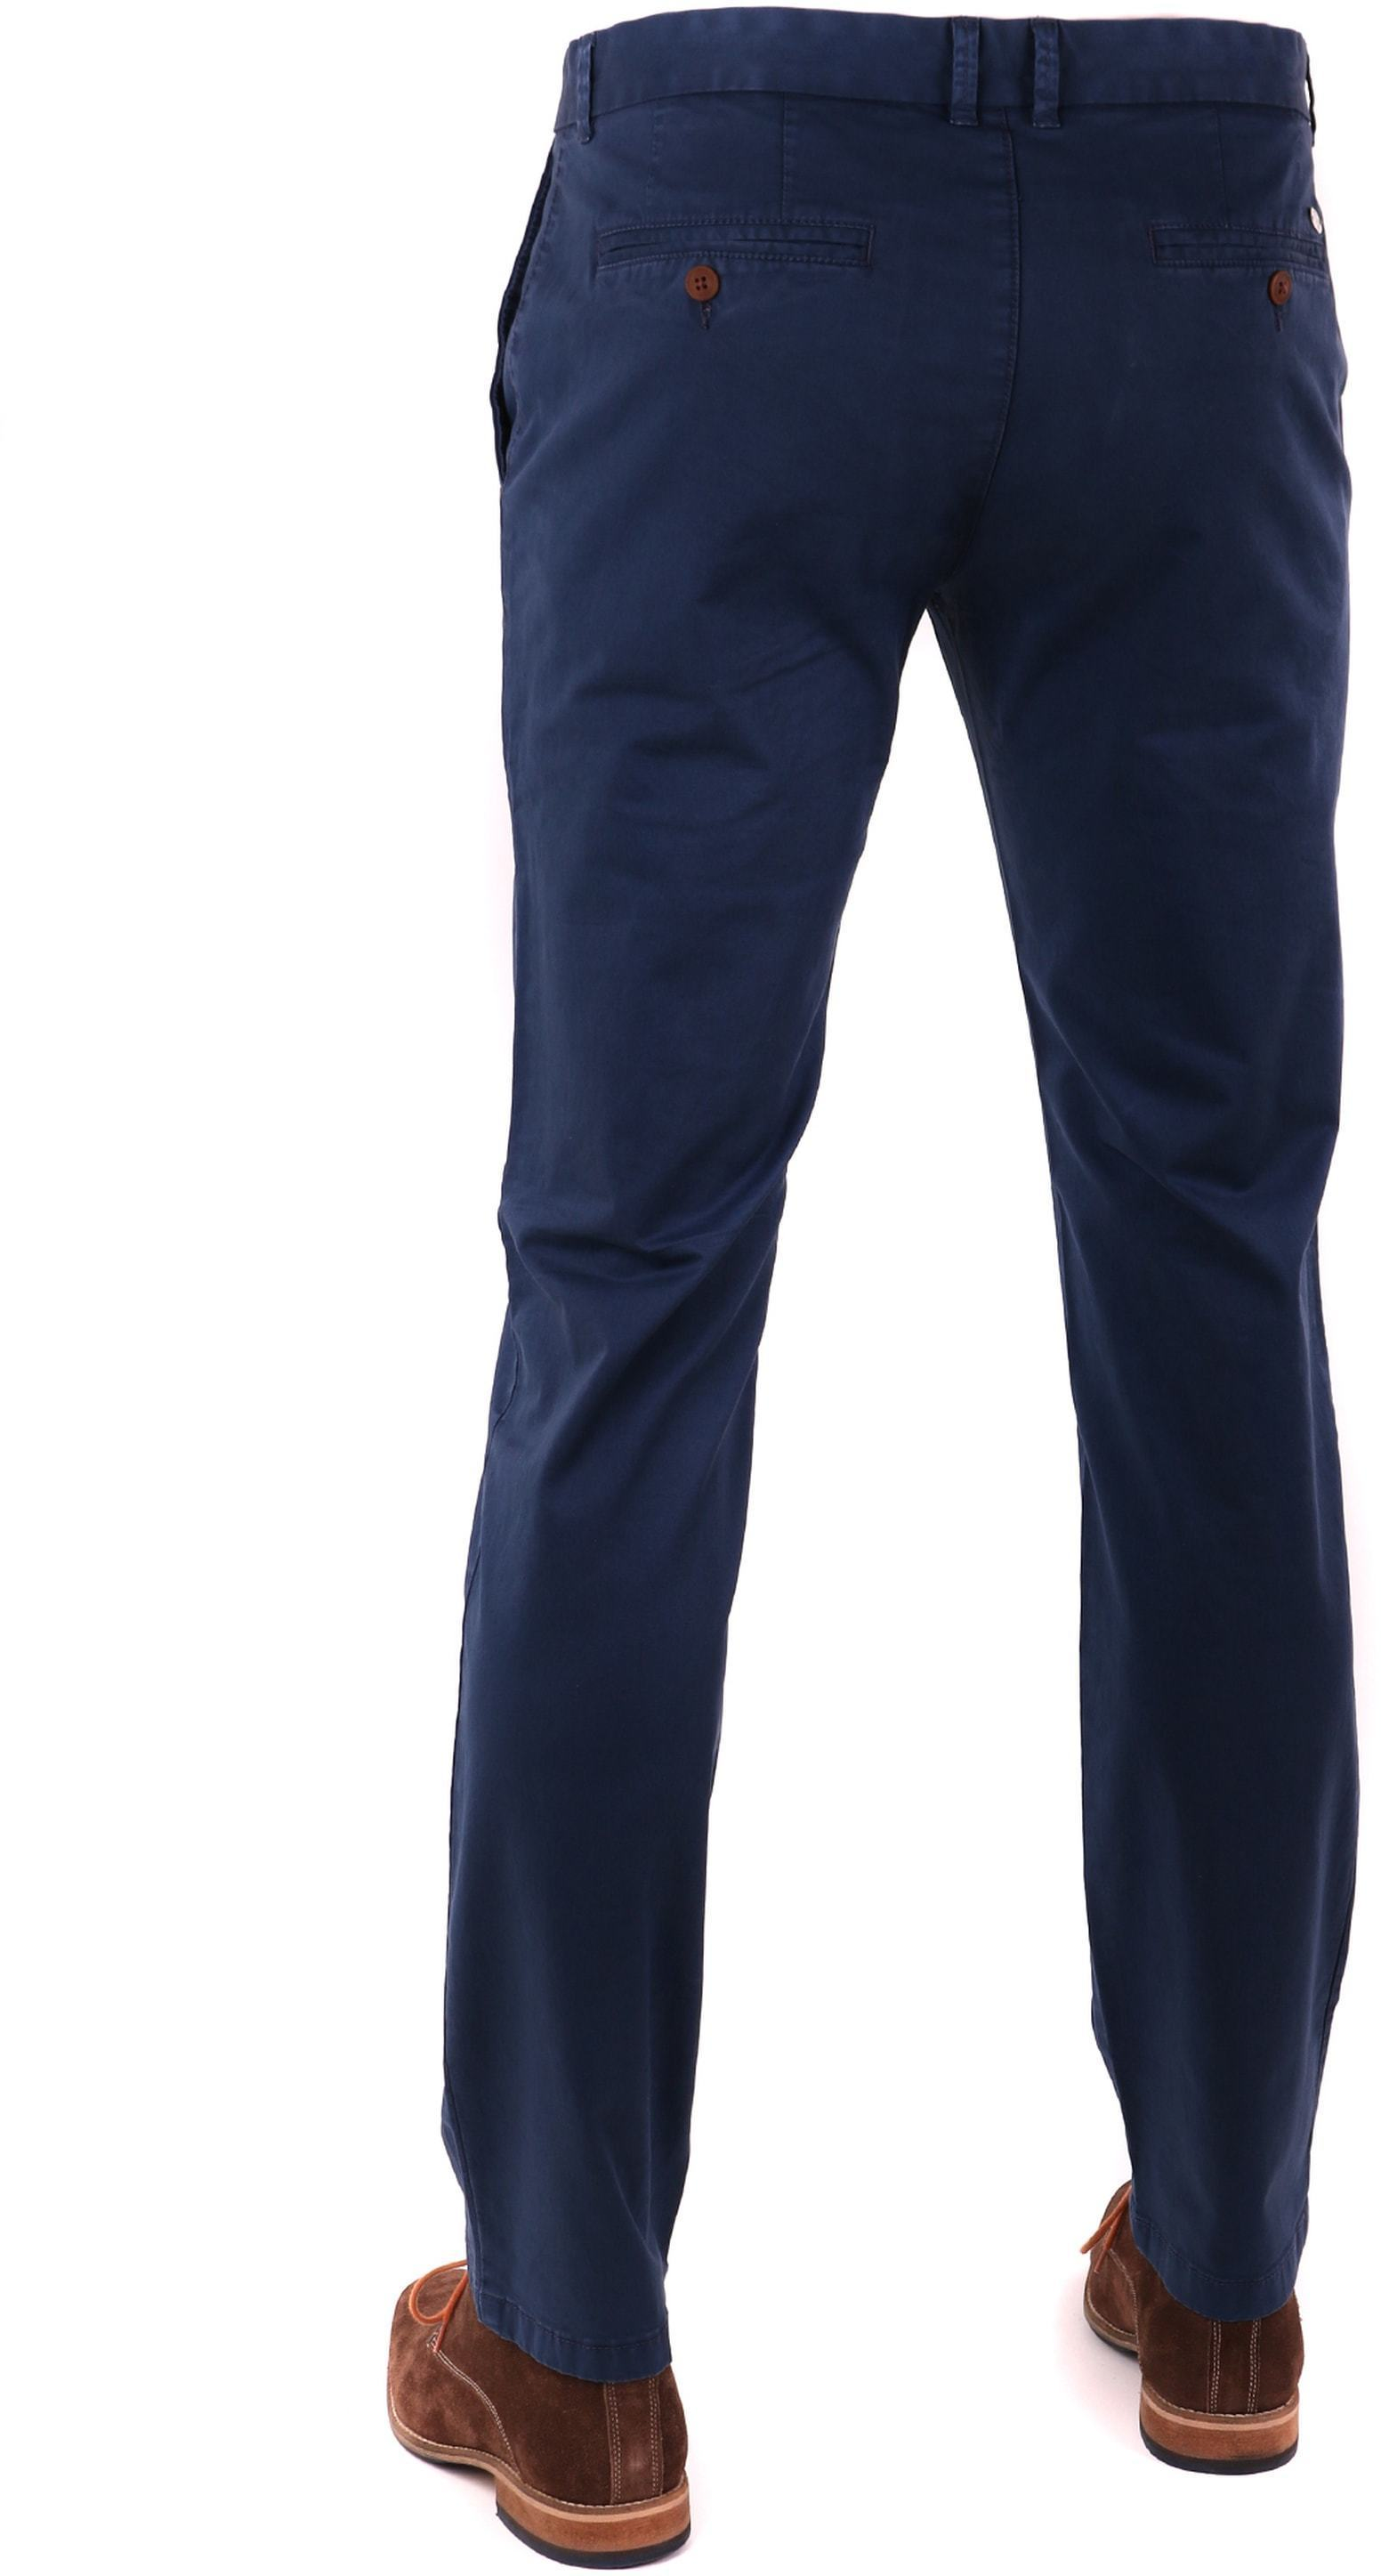 Suitable Chino Broek Donkerblauw foto 1